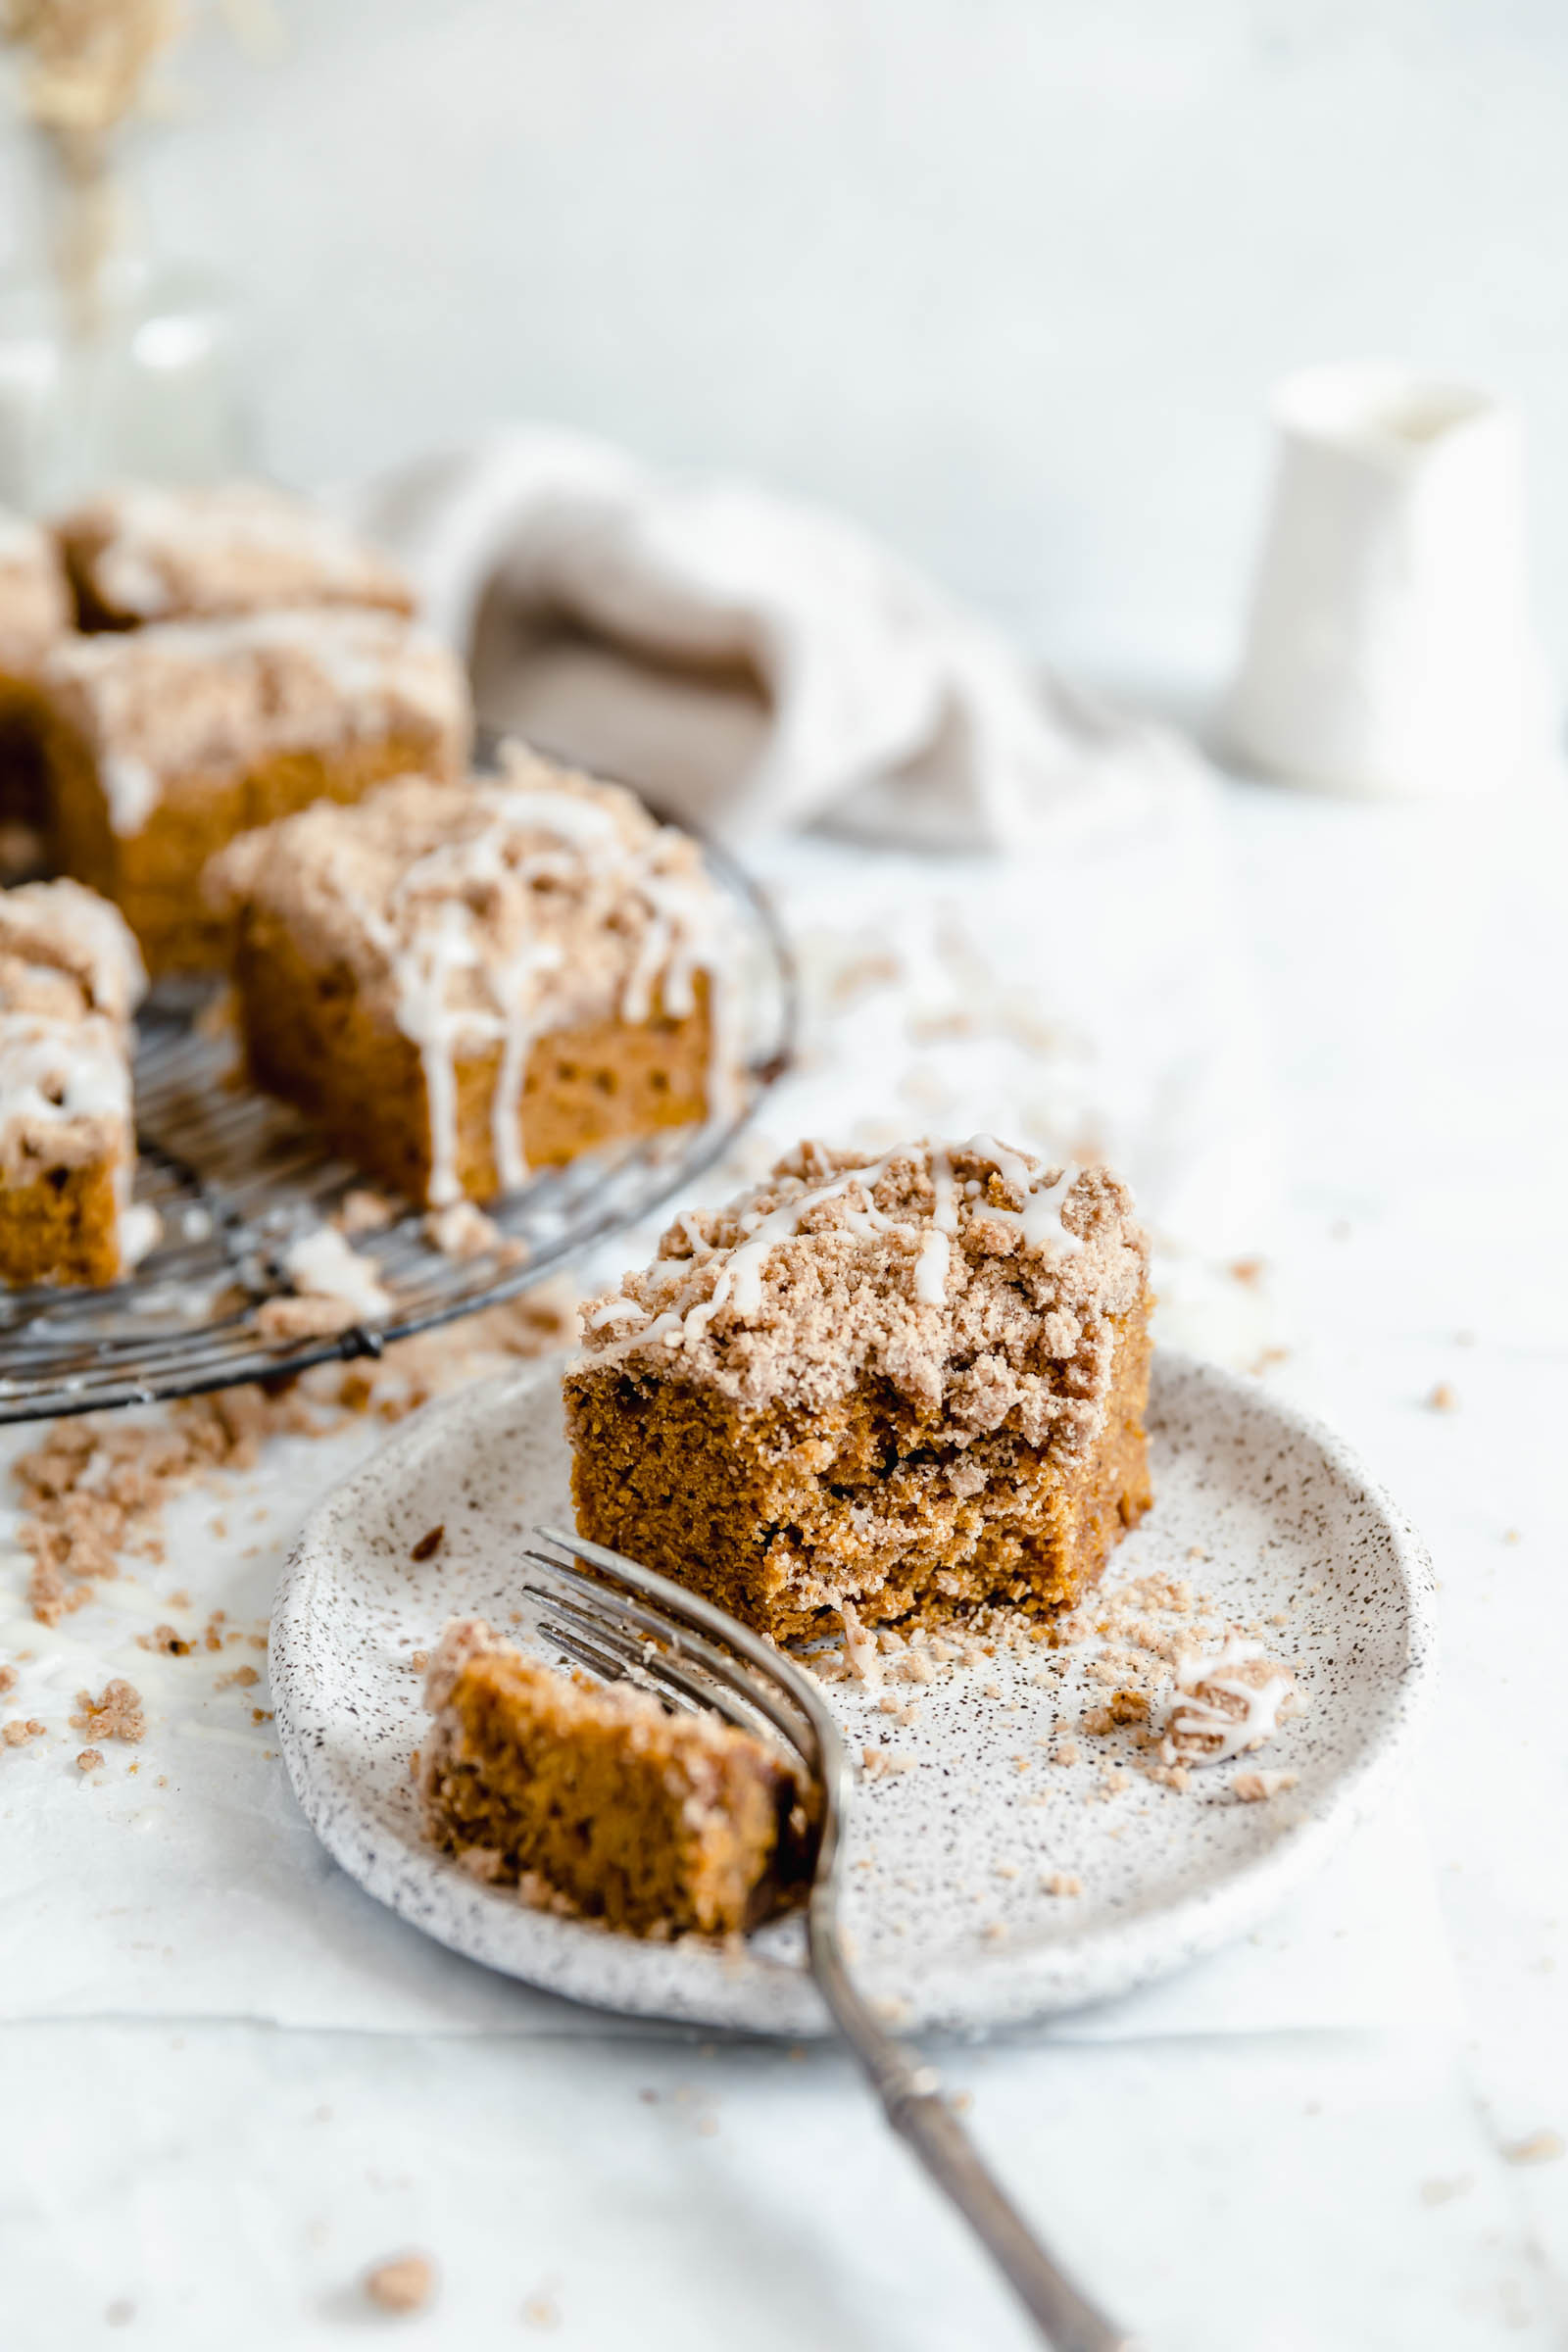 slice of pumpkin crumb coffee cake with a bite taken out